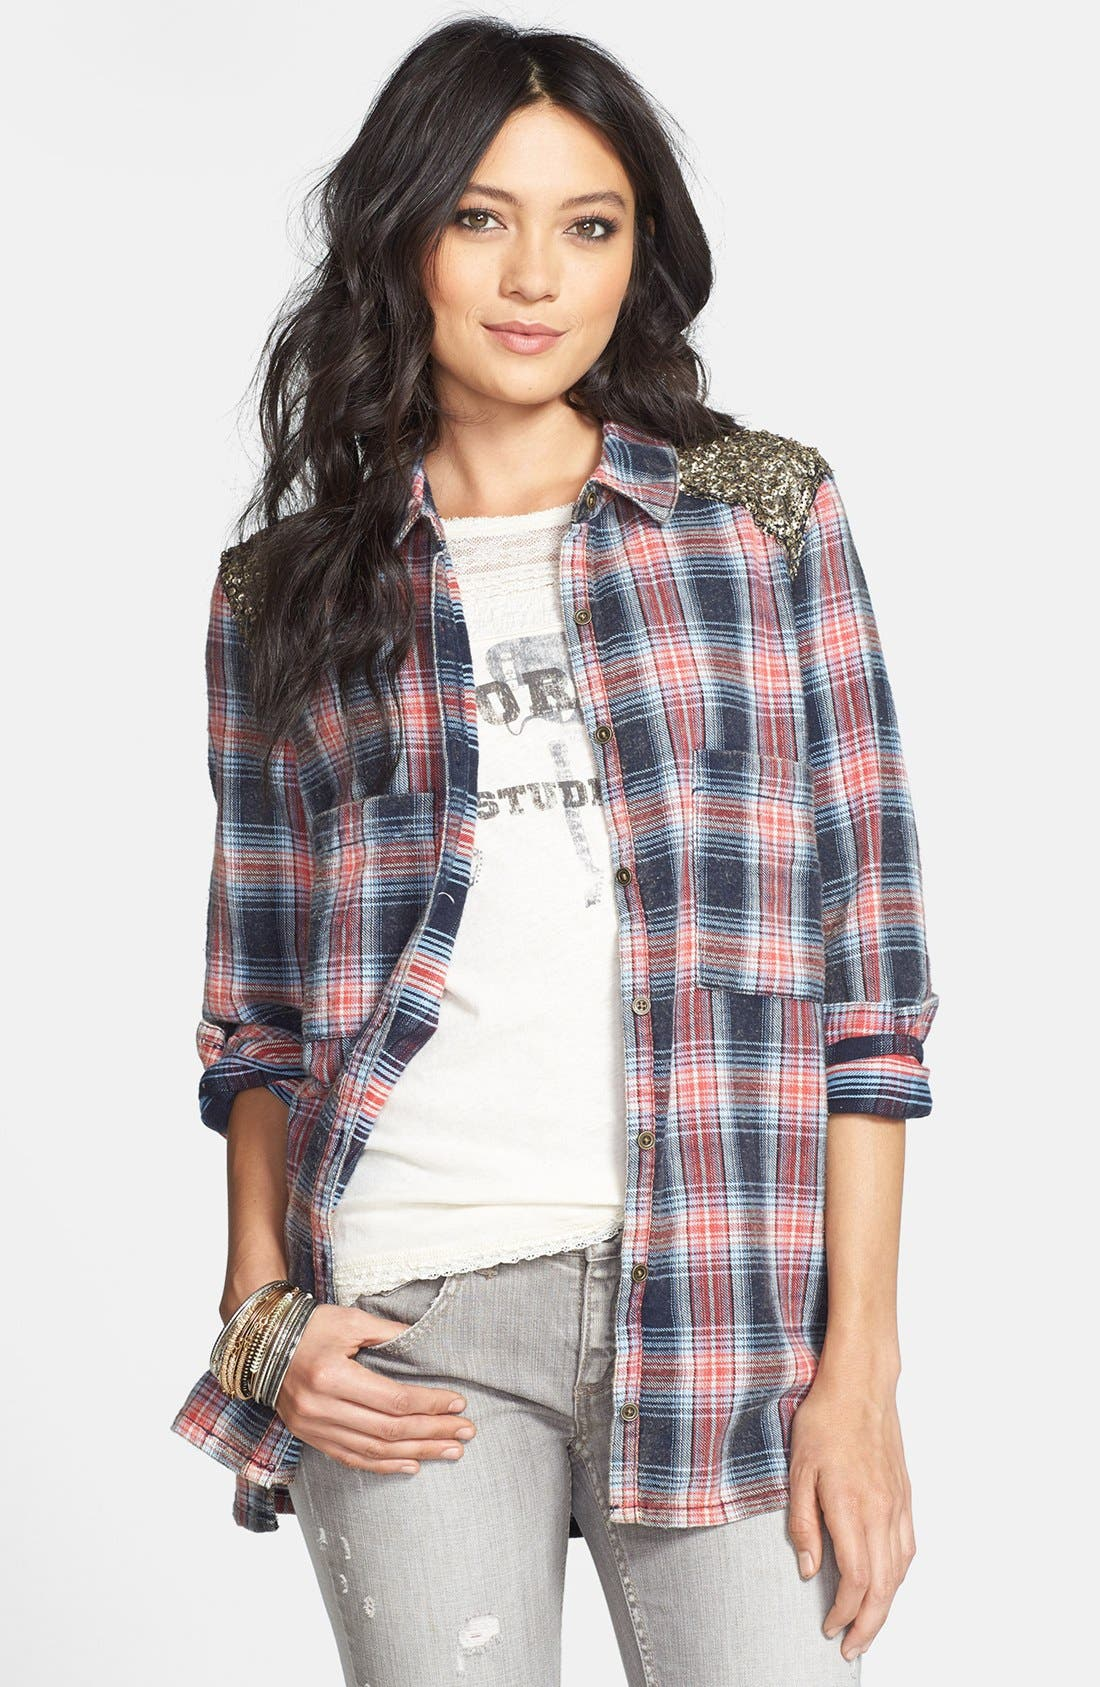 Alternate Image 1 Selected - Free People 'Little Bit of Sugar' Sequin Plaid Tunic Shirt